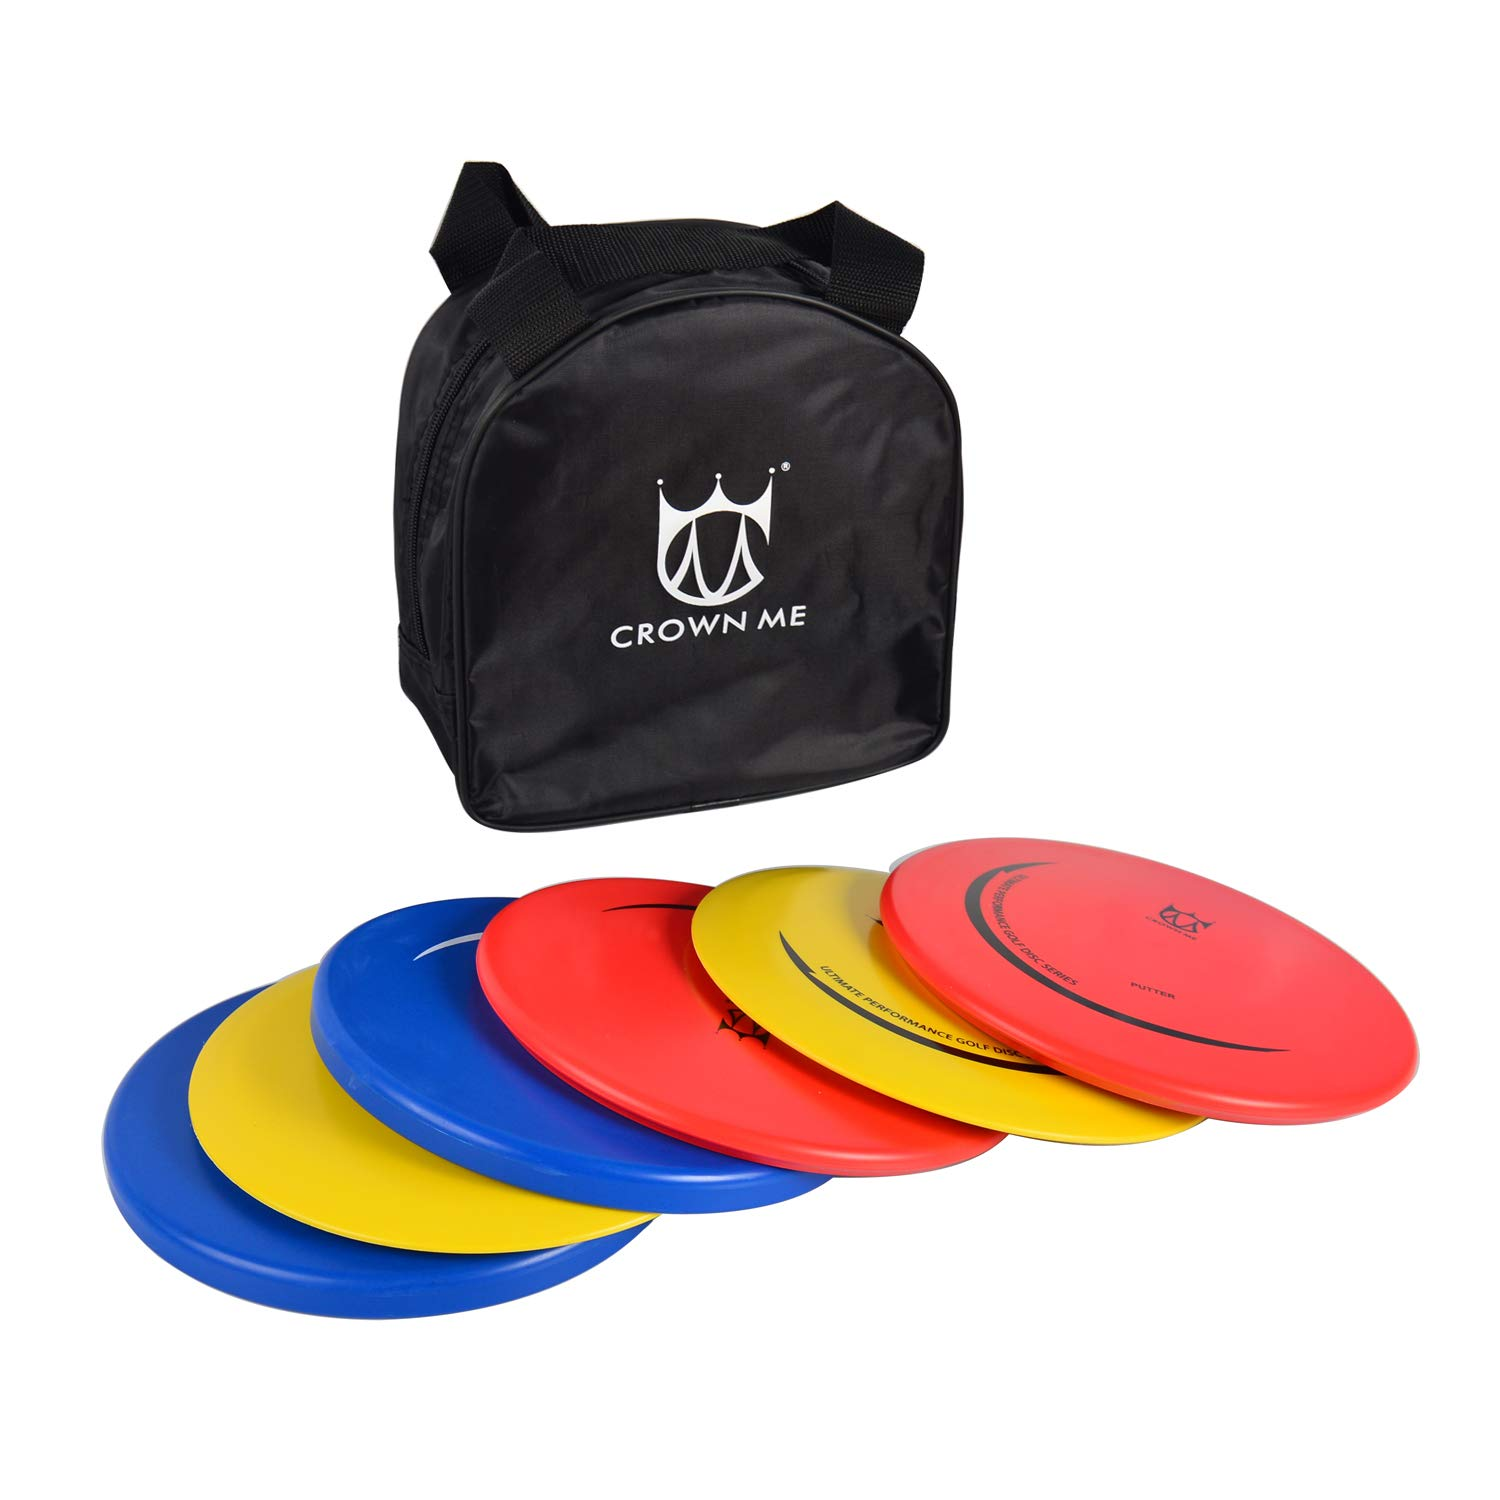 CROWN ME Disc Golf Set with 6 Discs and Starter Disc Golf Bag - DX Distance Driver, Fairway Driver, Mid-Range, Putter Disc by CROWN ME